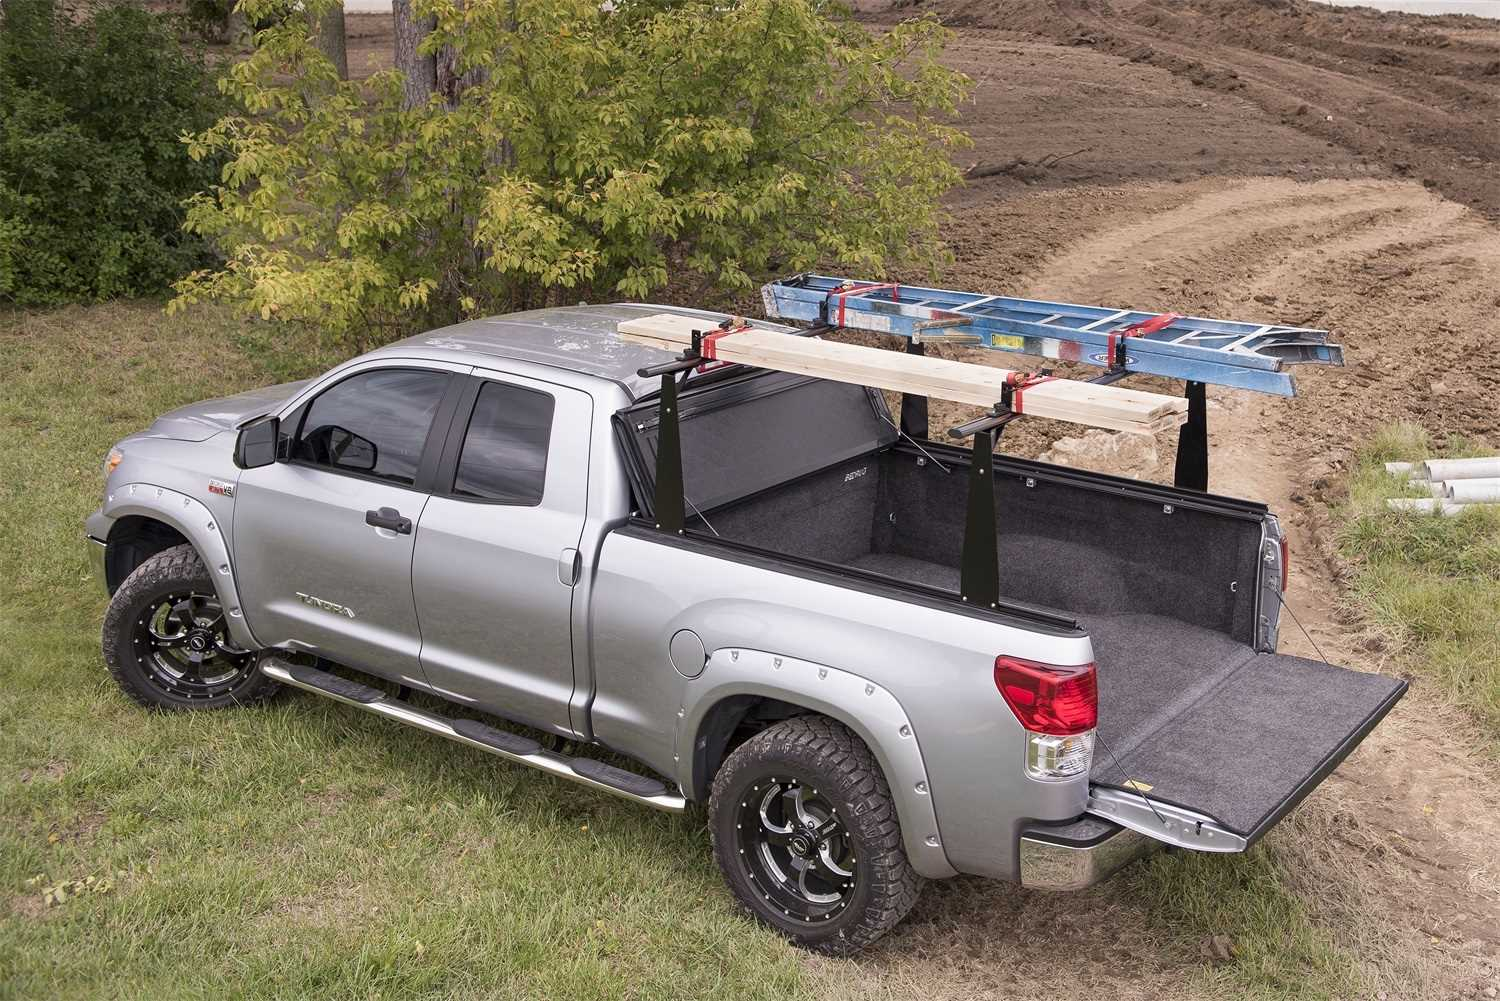 72301BT Bak Industries BAKFlip CS-F1 Hard Folding Truck Bed Cover/Integrated Rack System